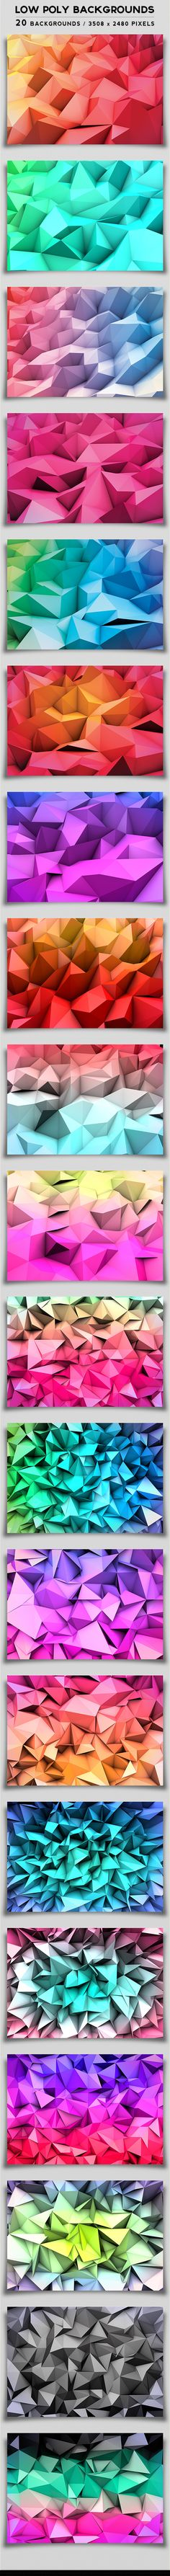 Low Poly Backgrounds by Darius Zan, via Behance